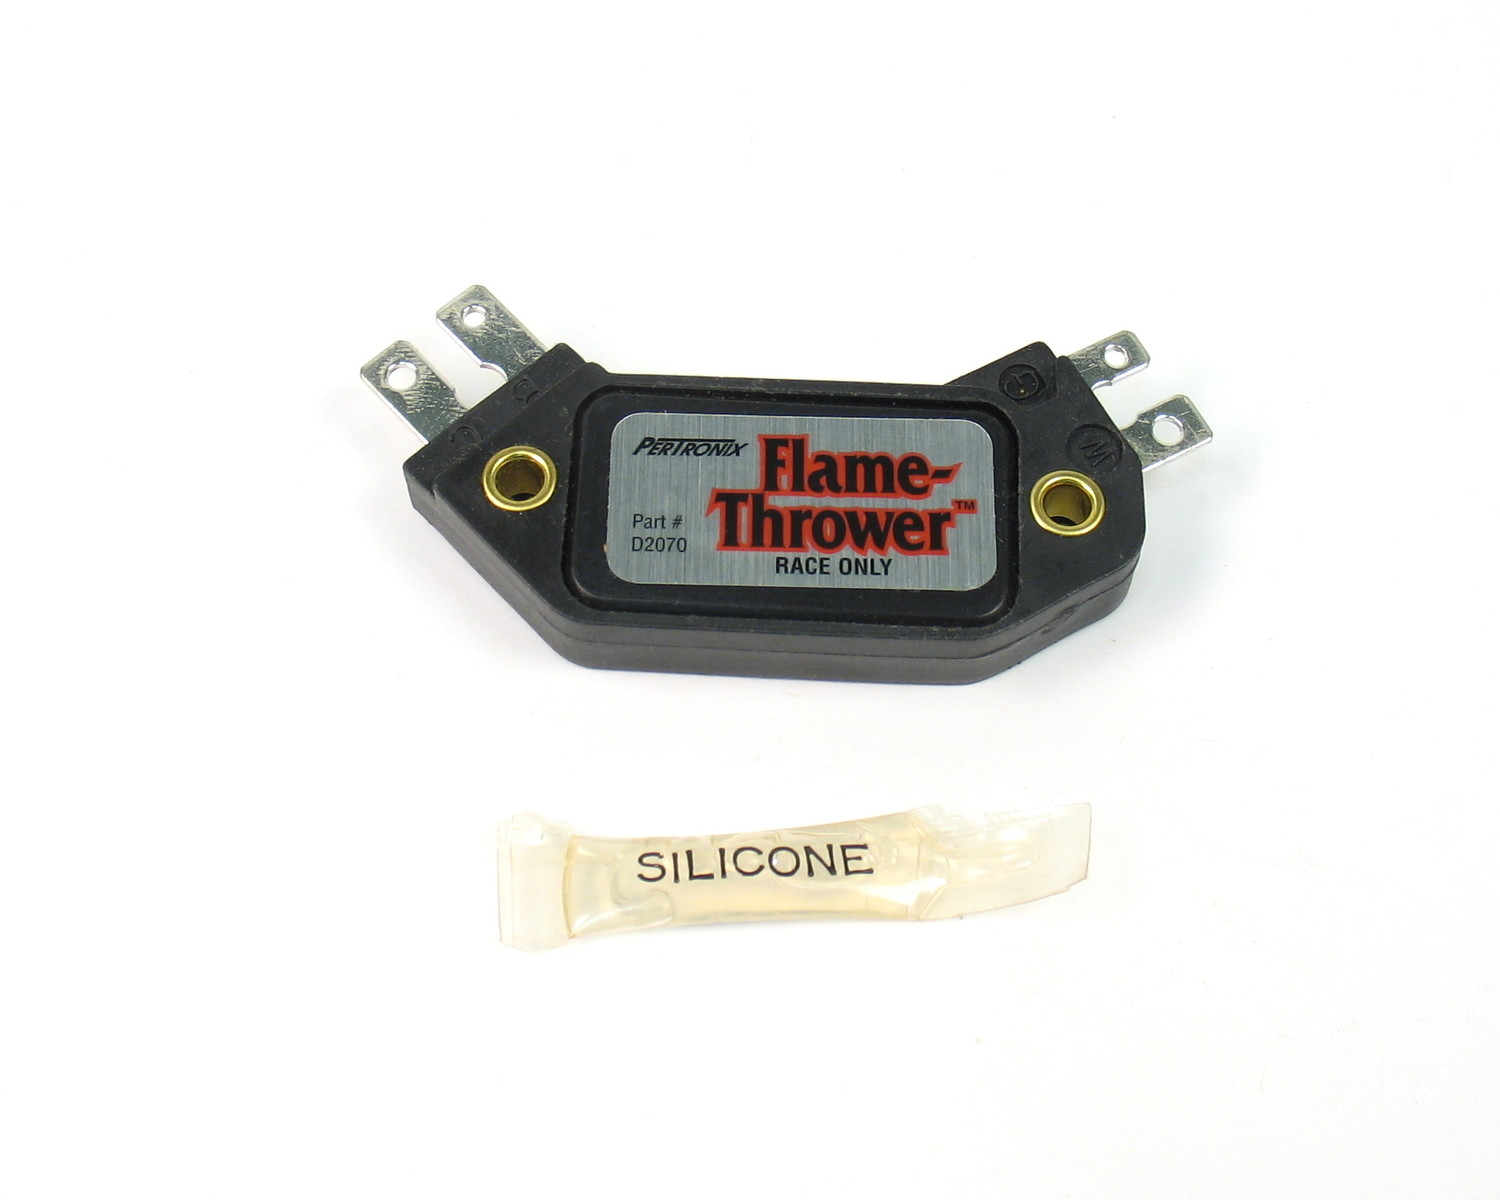 PERTRONIX - Flame-Thrower Race Ignition Module - PTX D2070